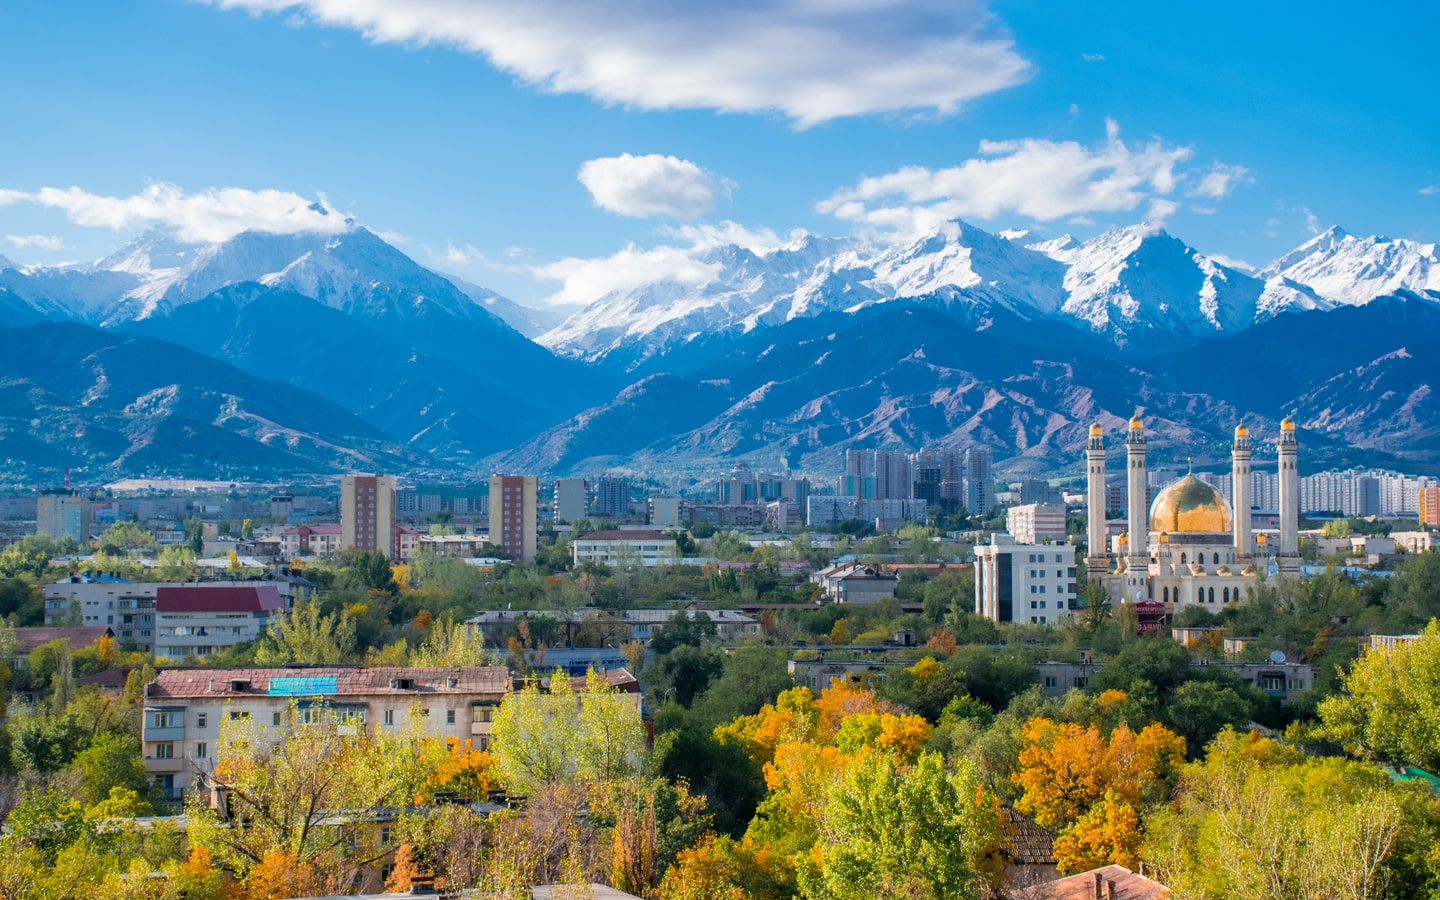 View of Almaty city and snow-capped mountains